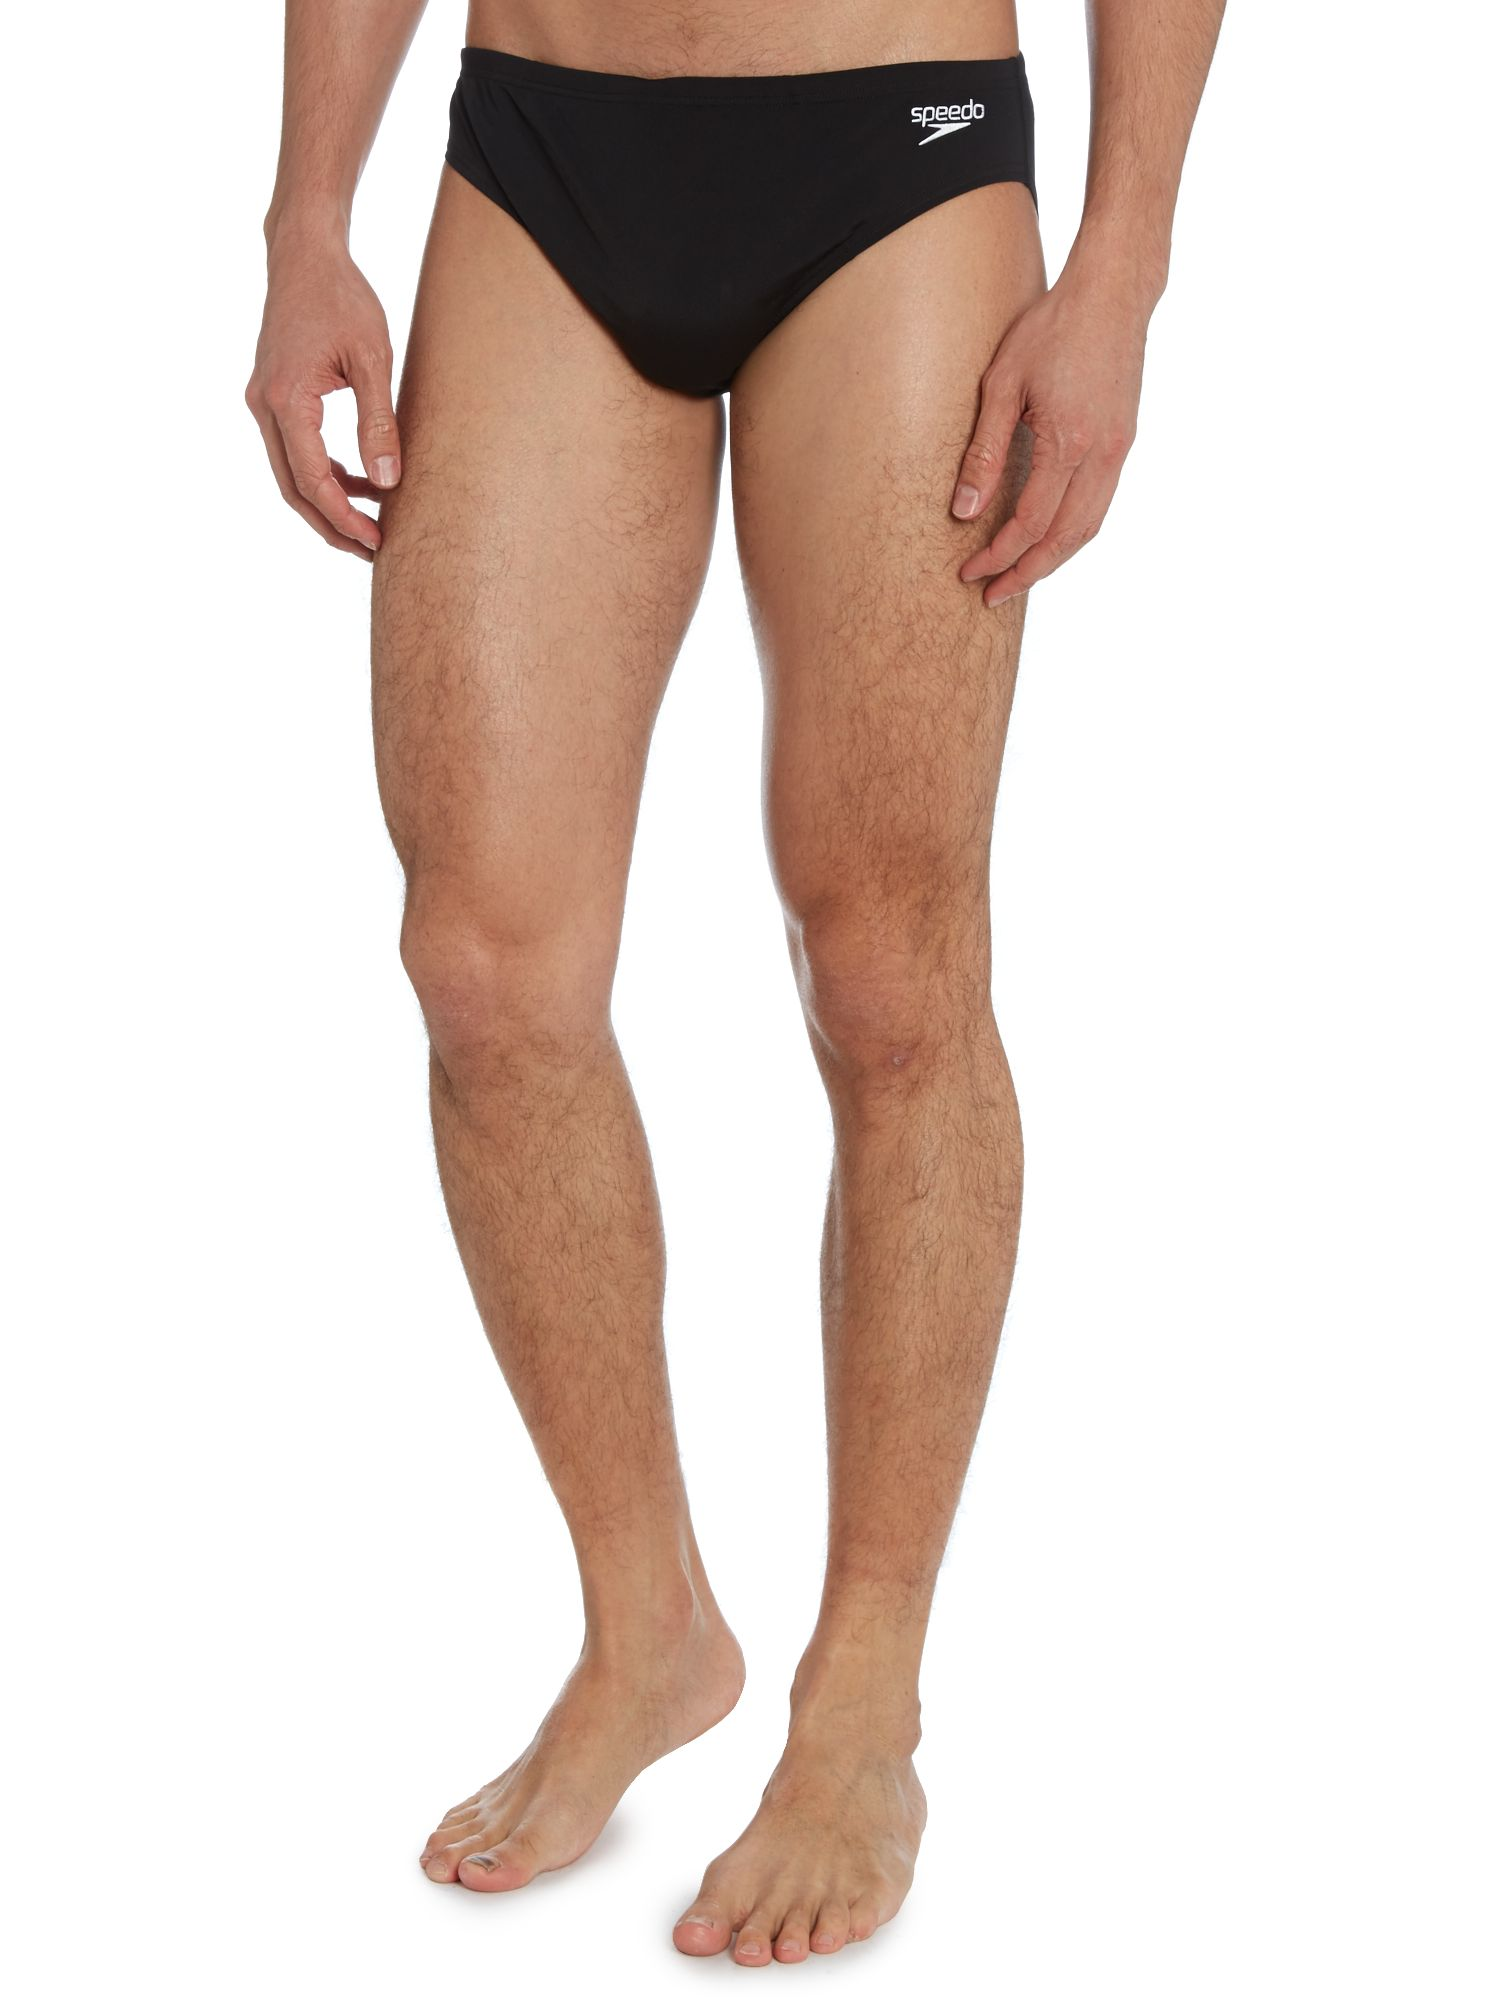 Endurance swim brief